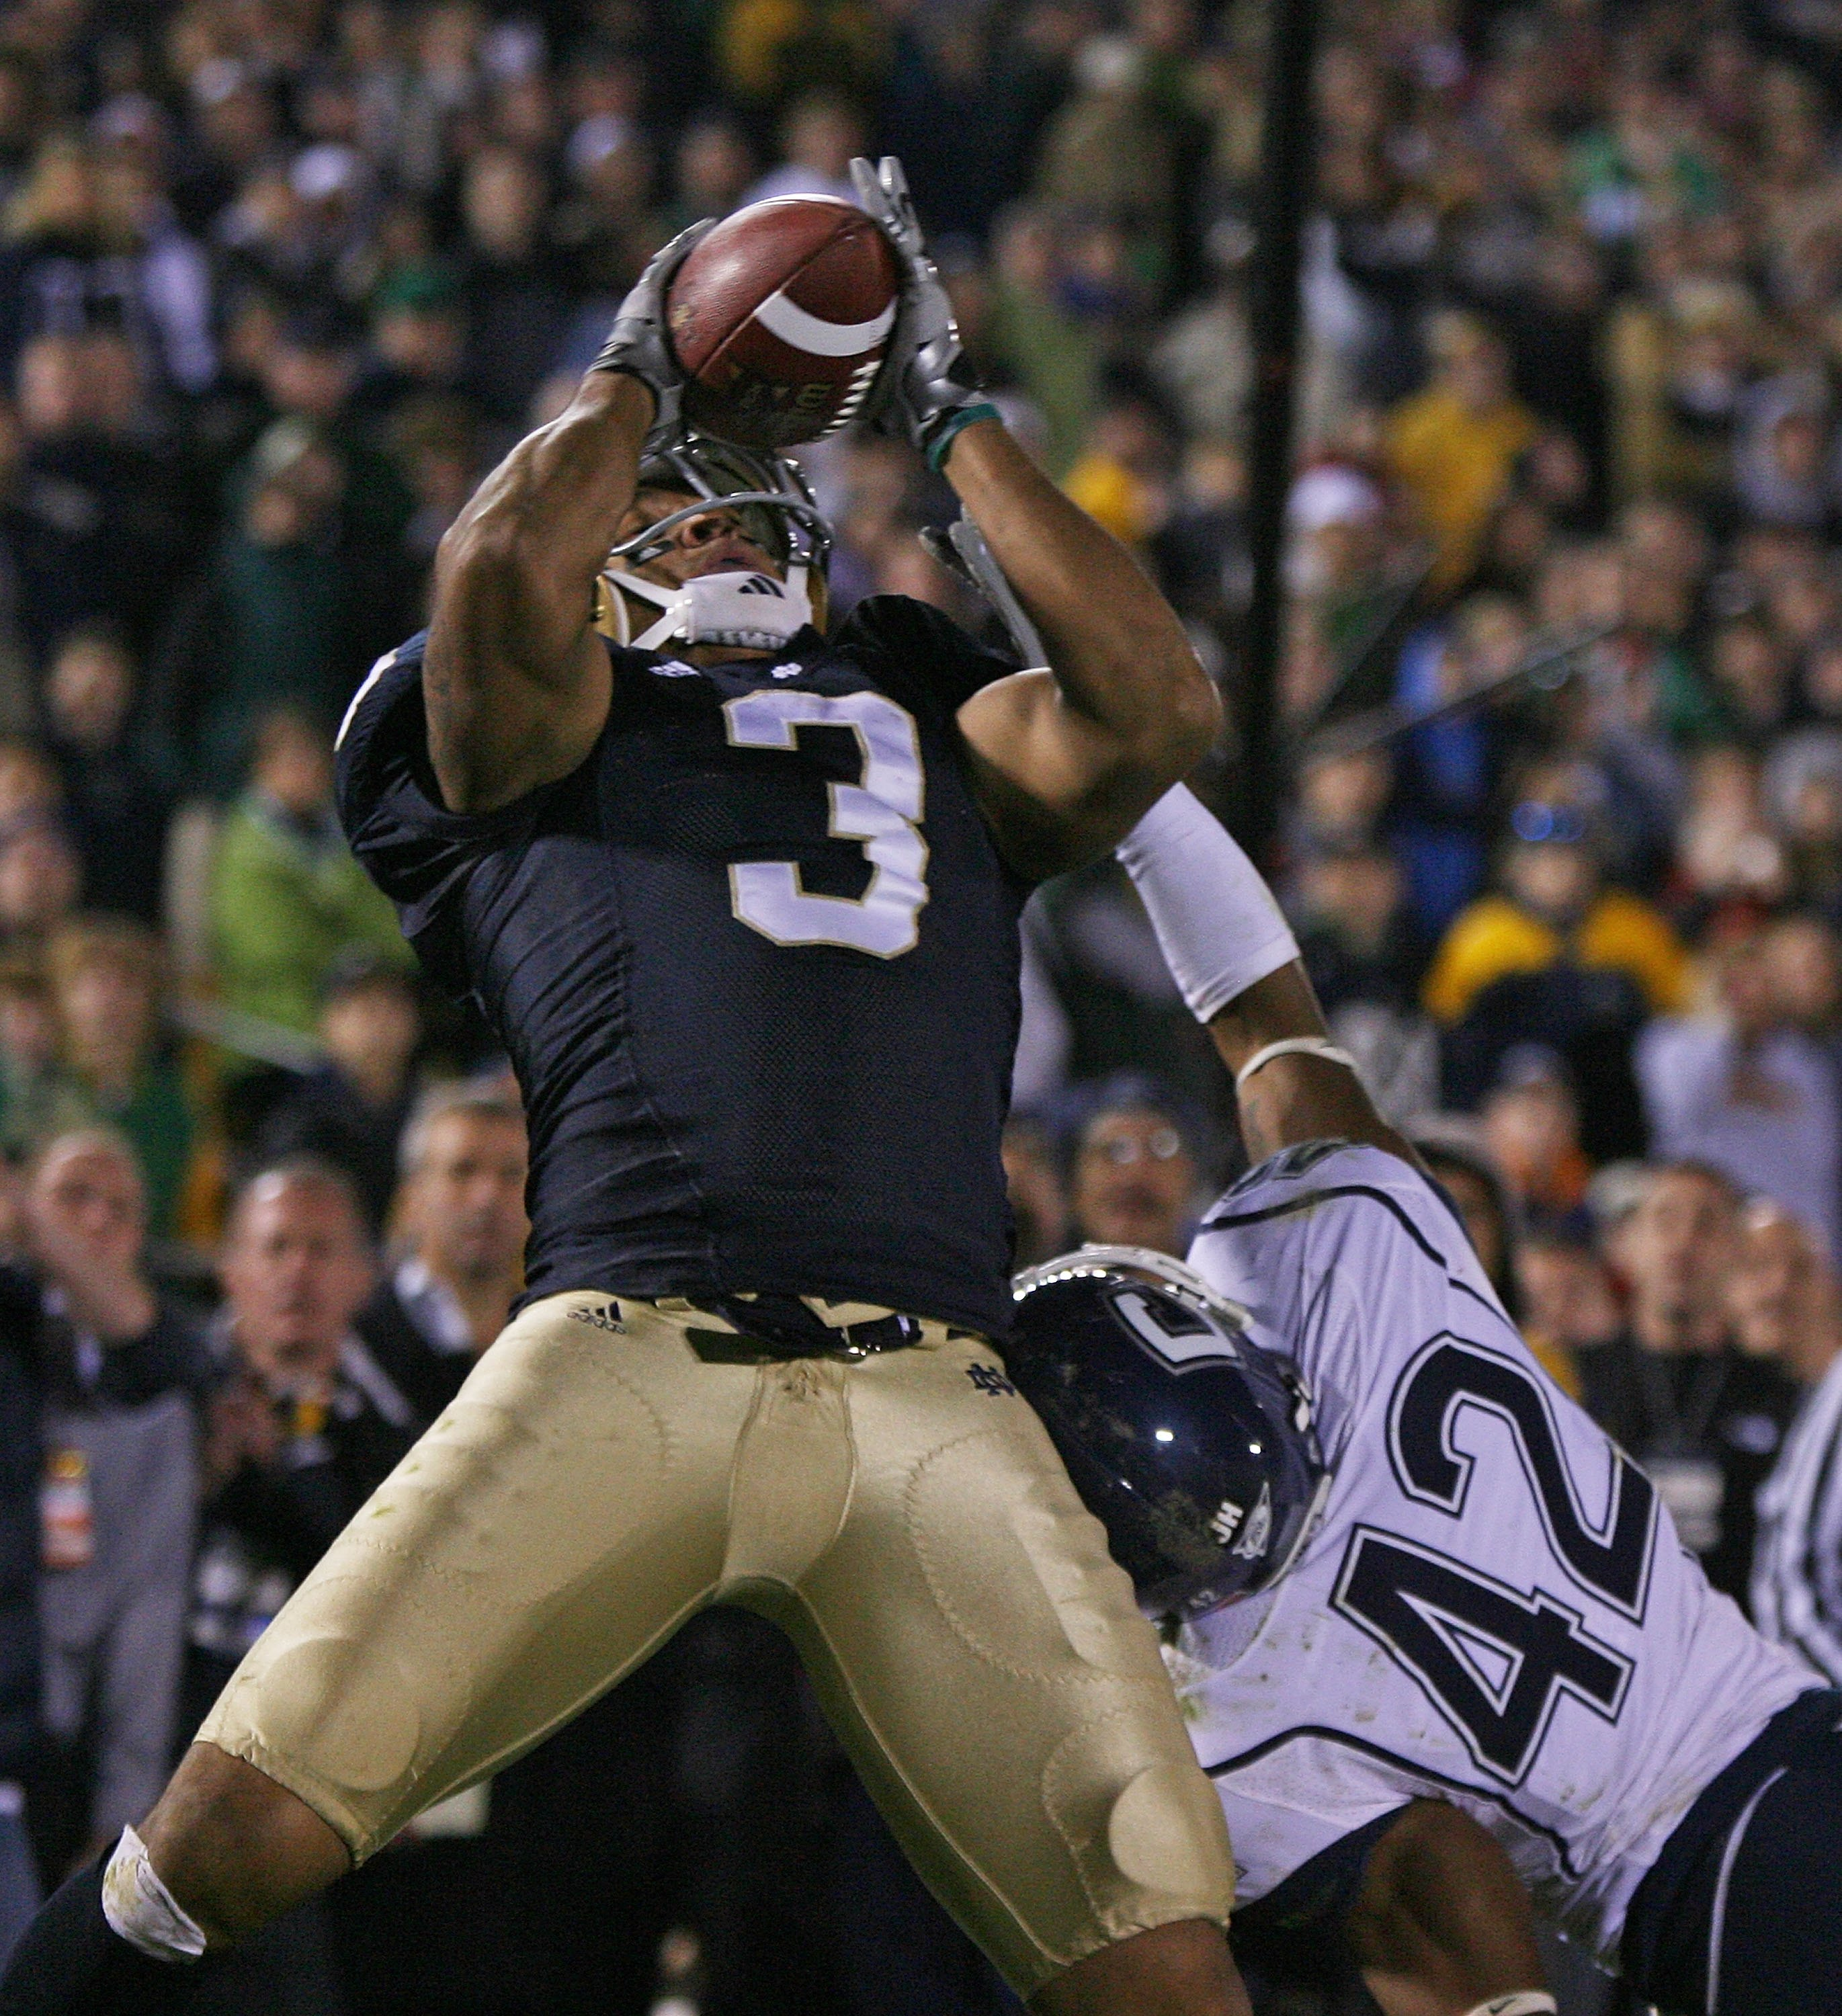 SOUTH BEND, IN - NOVEMBER 21: Michael Floyd #3 of the Notre Dame Fighting Irish catches a pass in overtime as Robert McClain #42 of the Univeristy of Connecticut Huskies defends at Notre Dame Stadium on November 21, 2009 in South Bend, Indiana. Connecticu